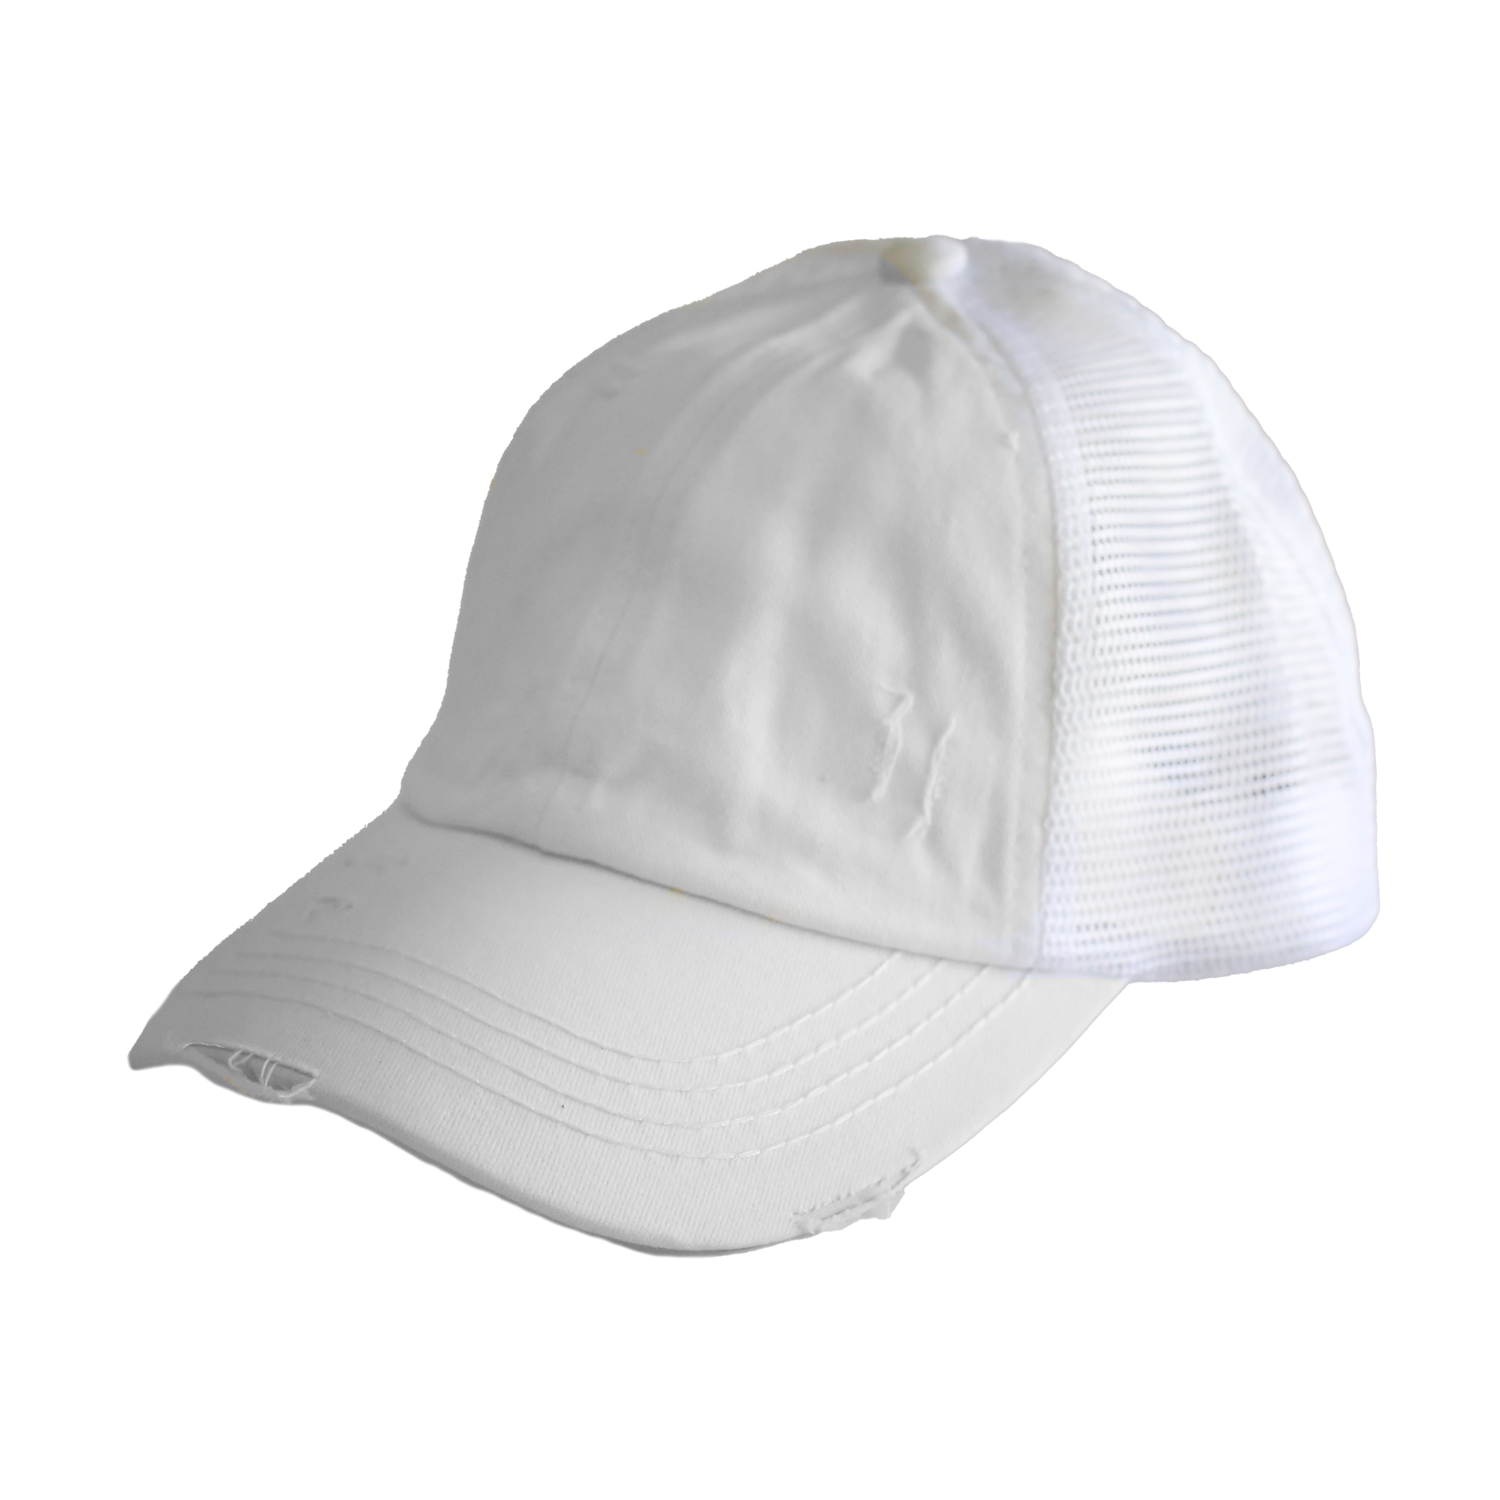 BT-780 C.C Criss Cross Pony Cap WHITE/WHITE